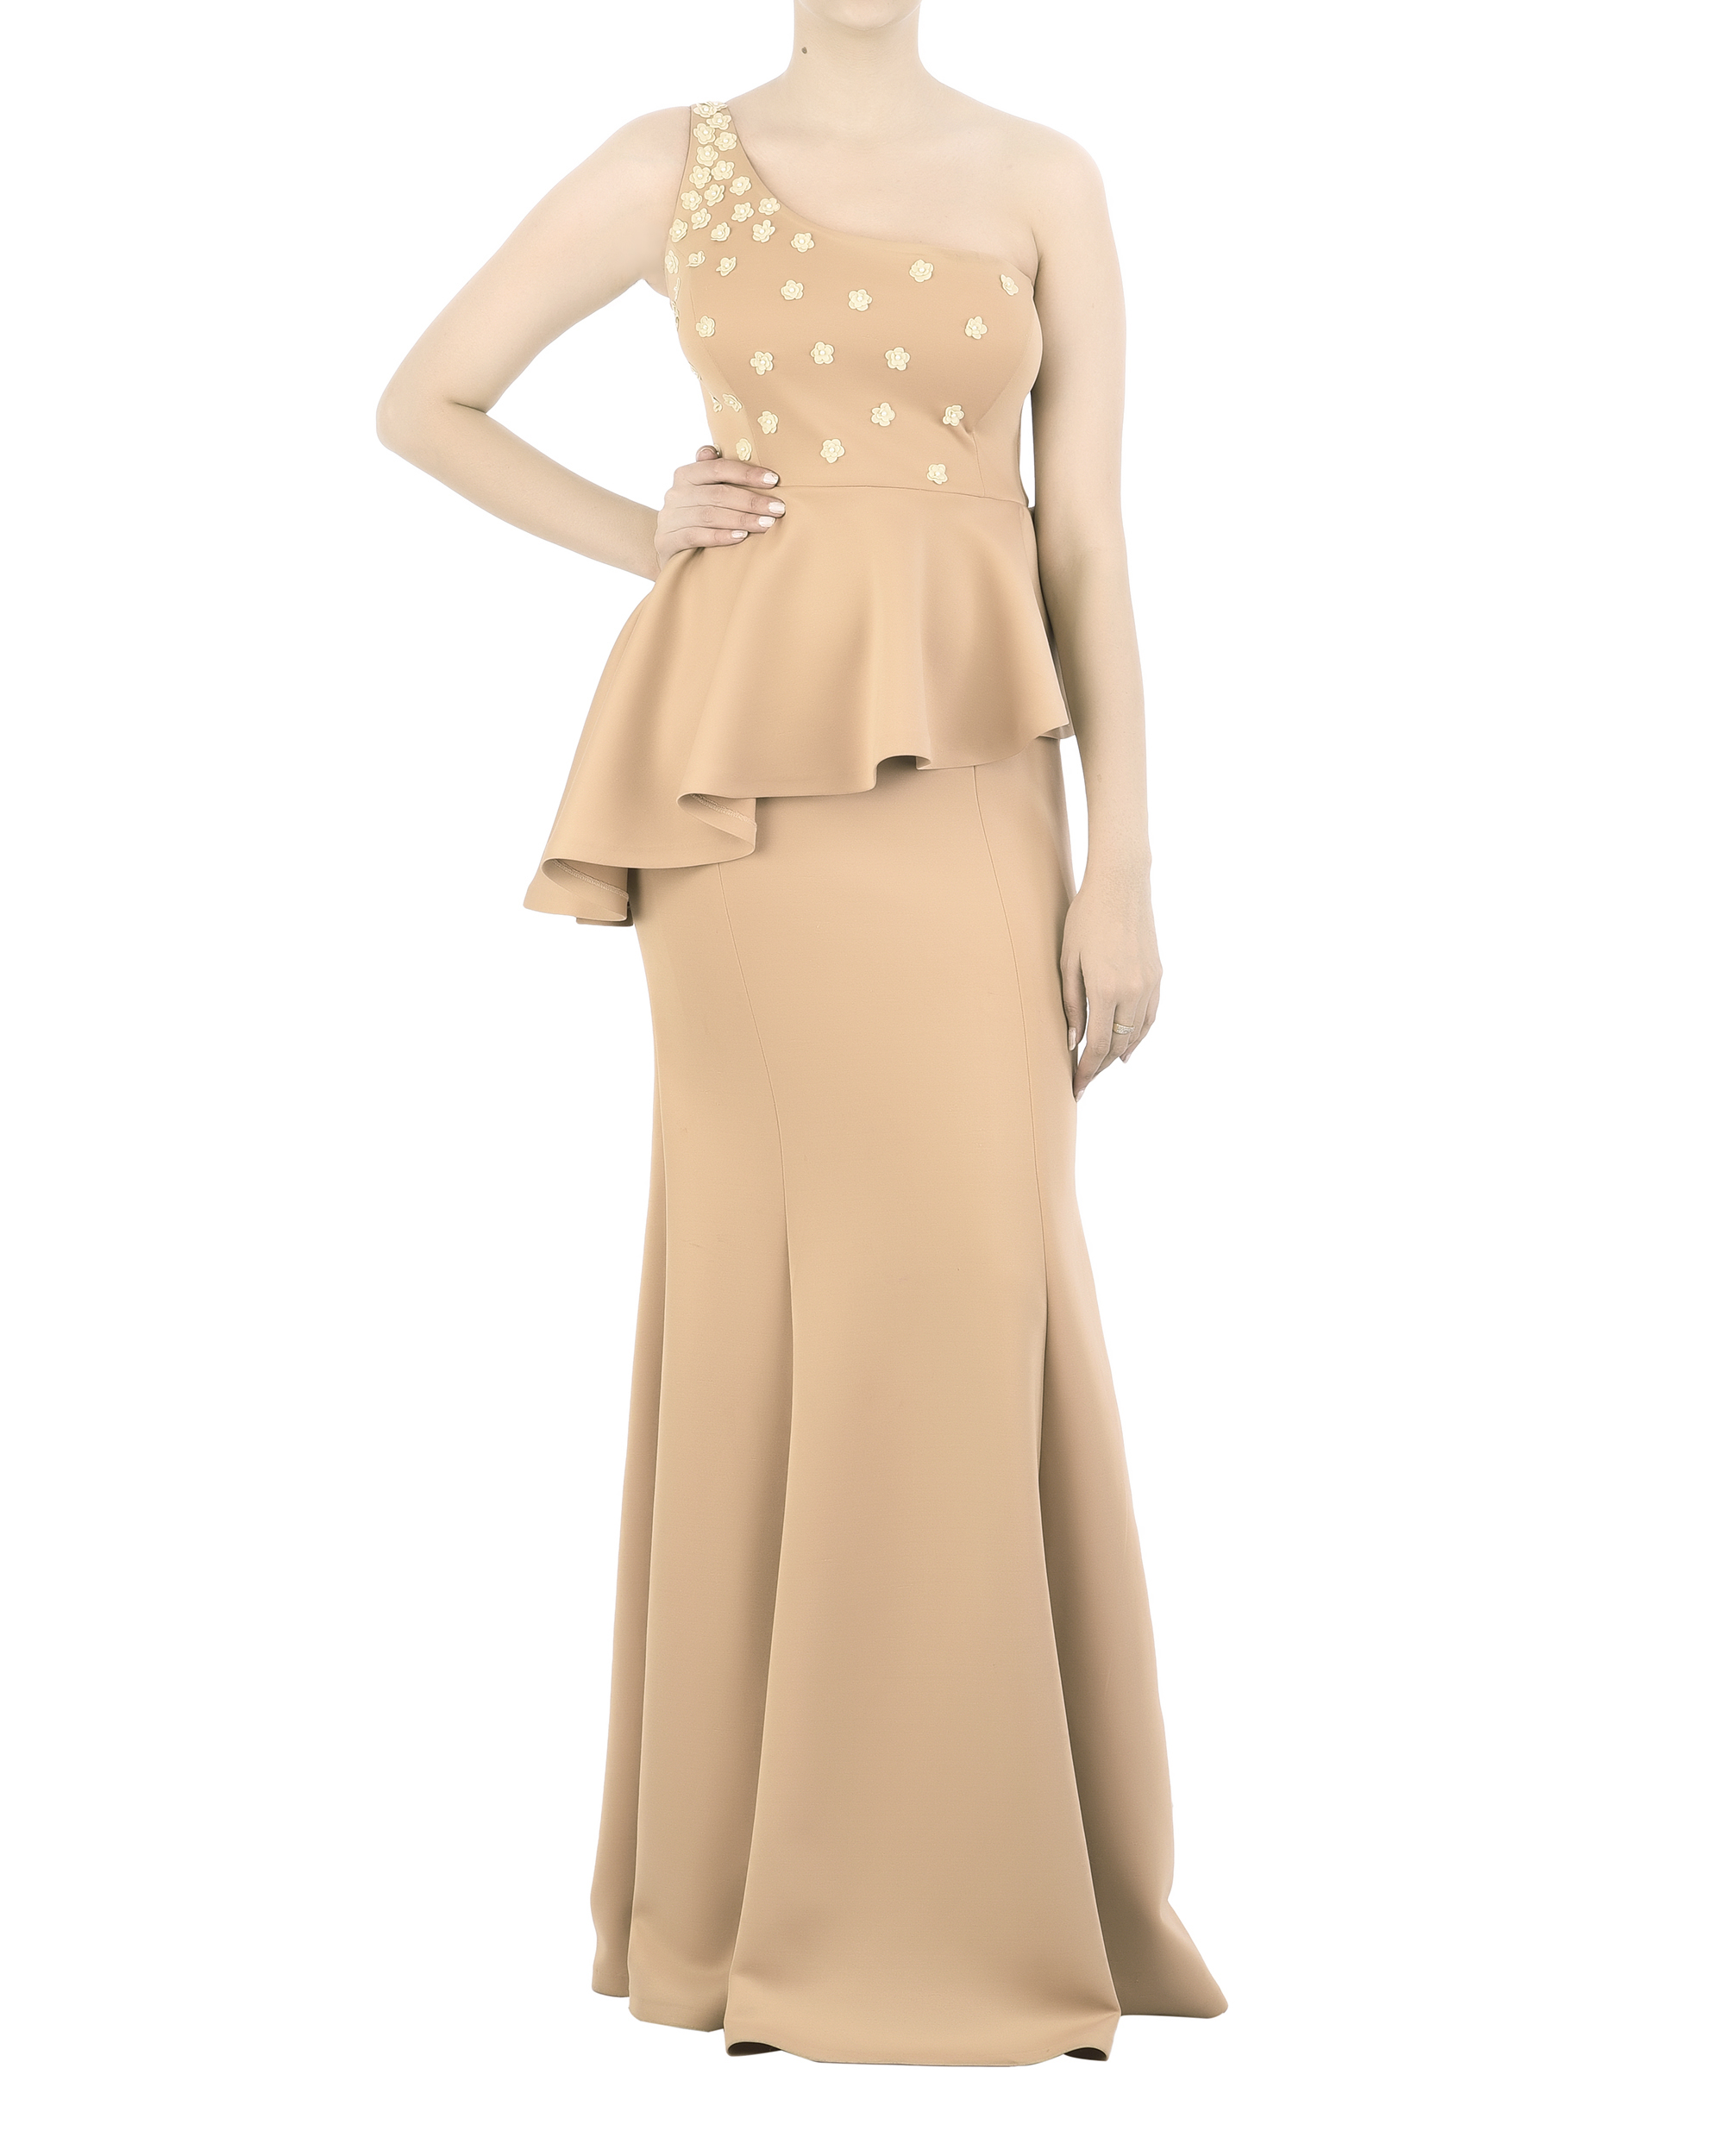 Neoprene off-shoulder gown with floral applique bodice